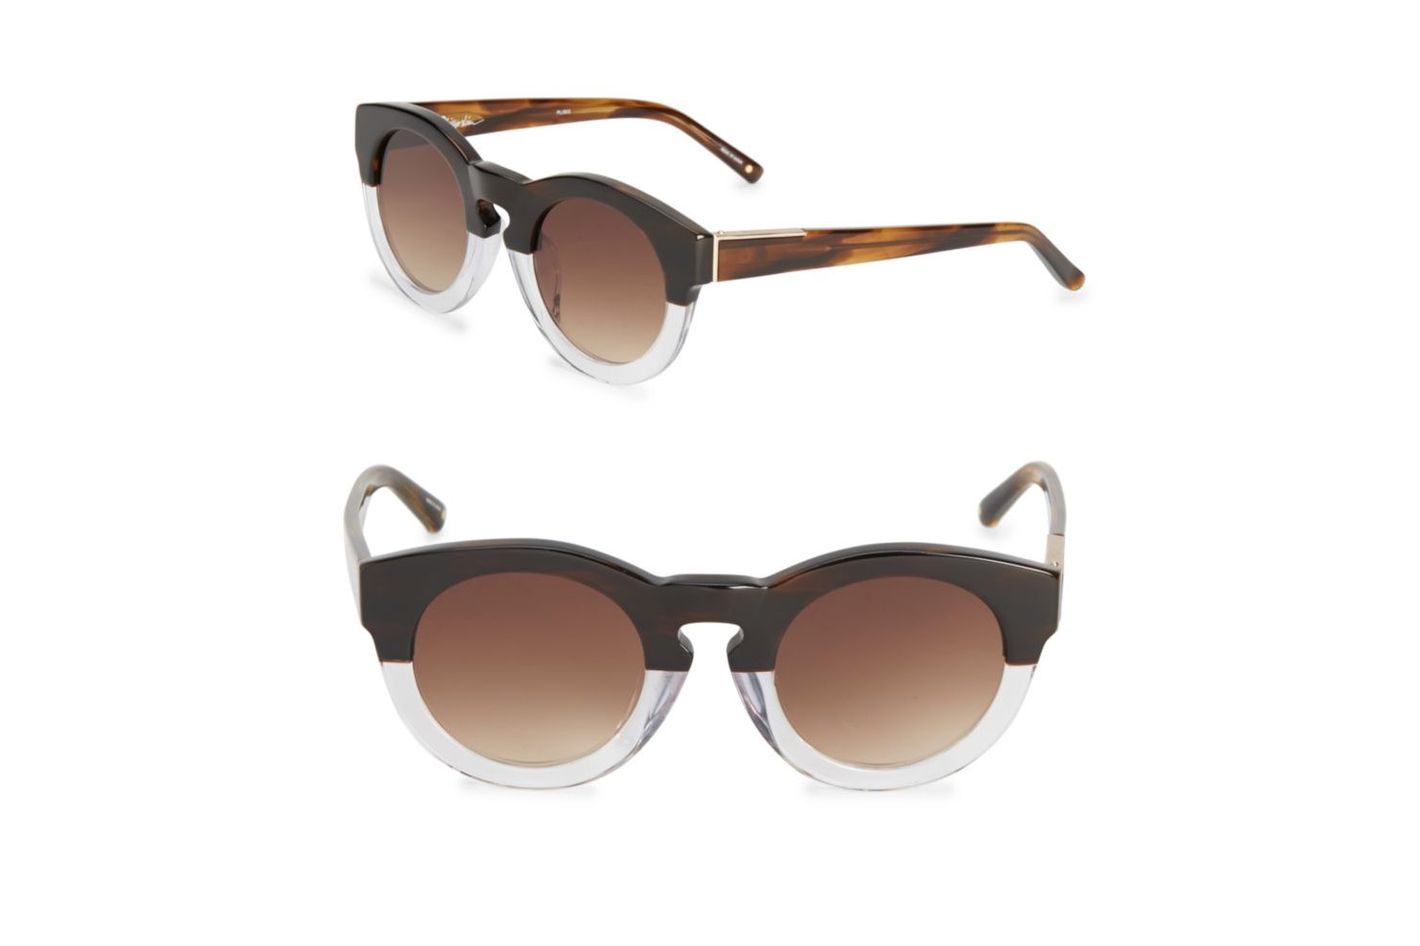 3.1 Phillip Lim 49mm Speckled Pantos Sunglasses